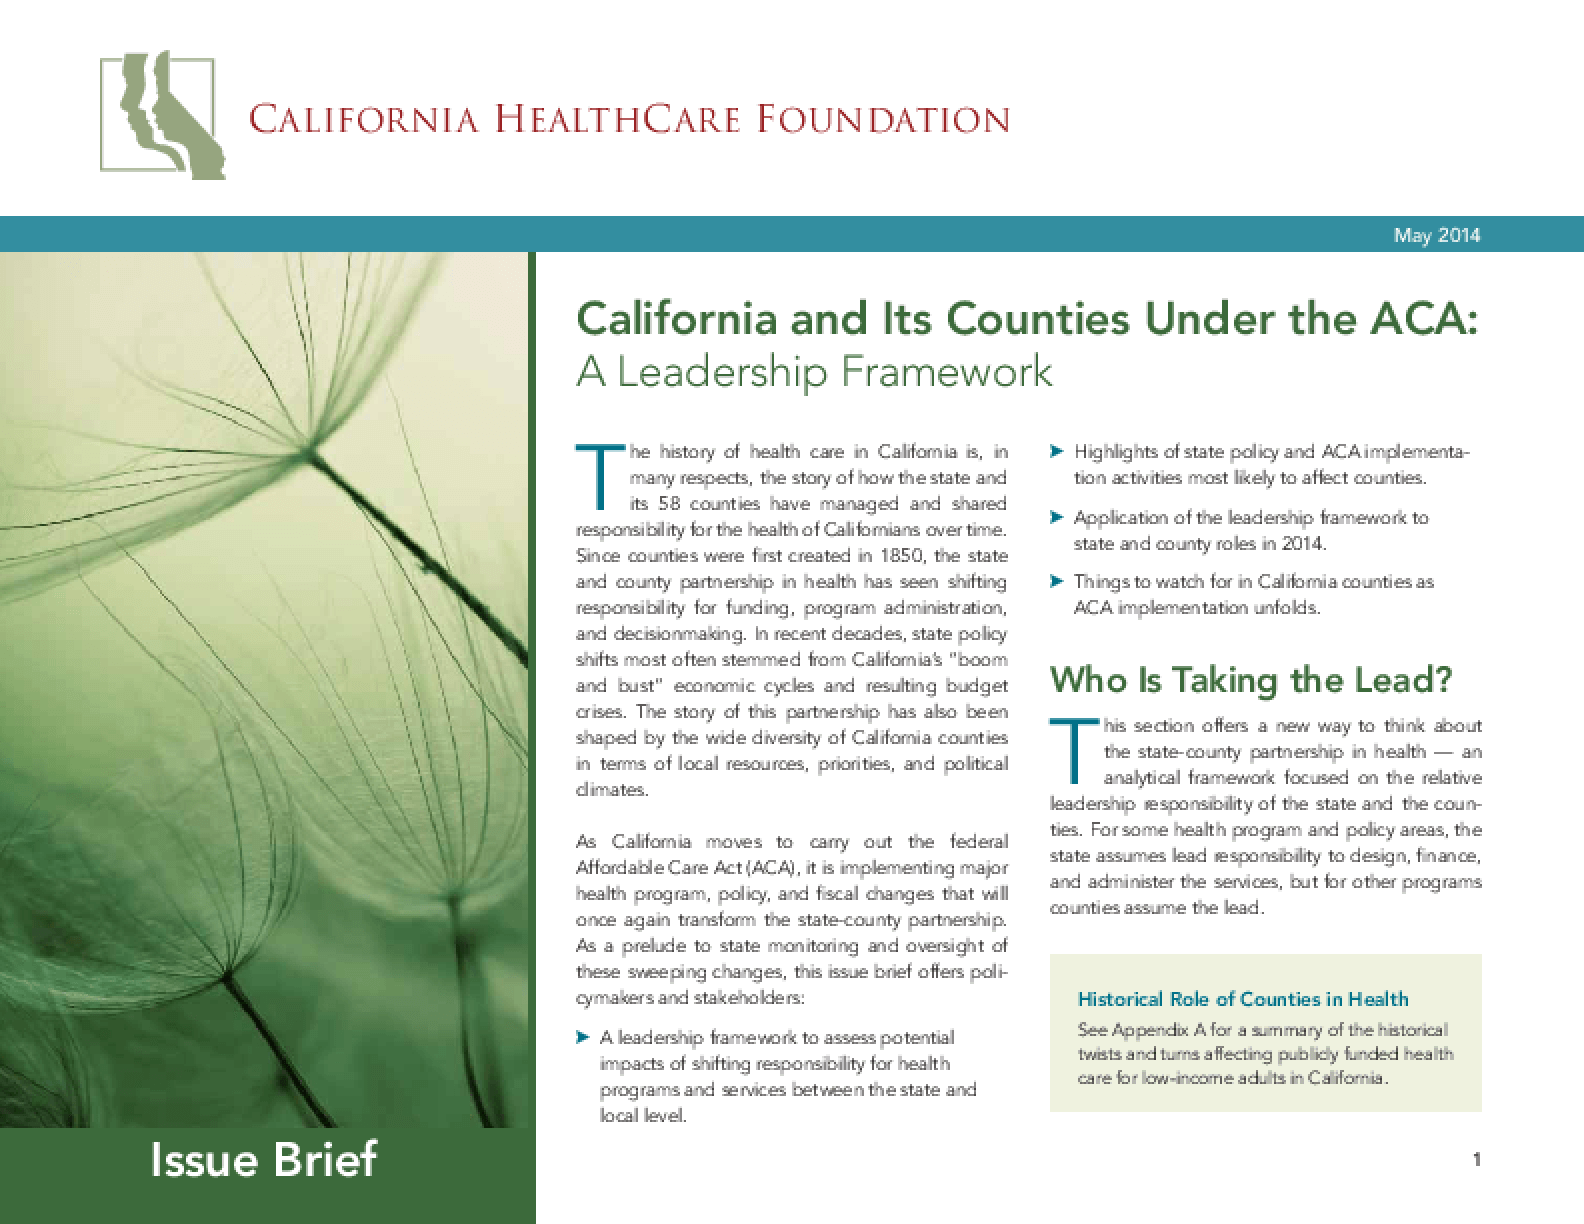 California and Its Counties Under the ACA: A Leadership Framework